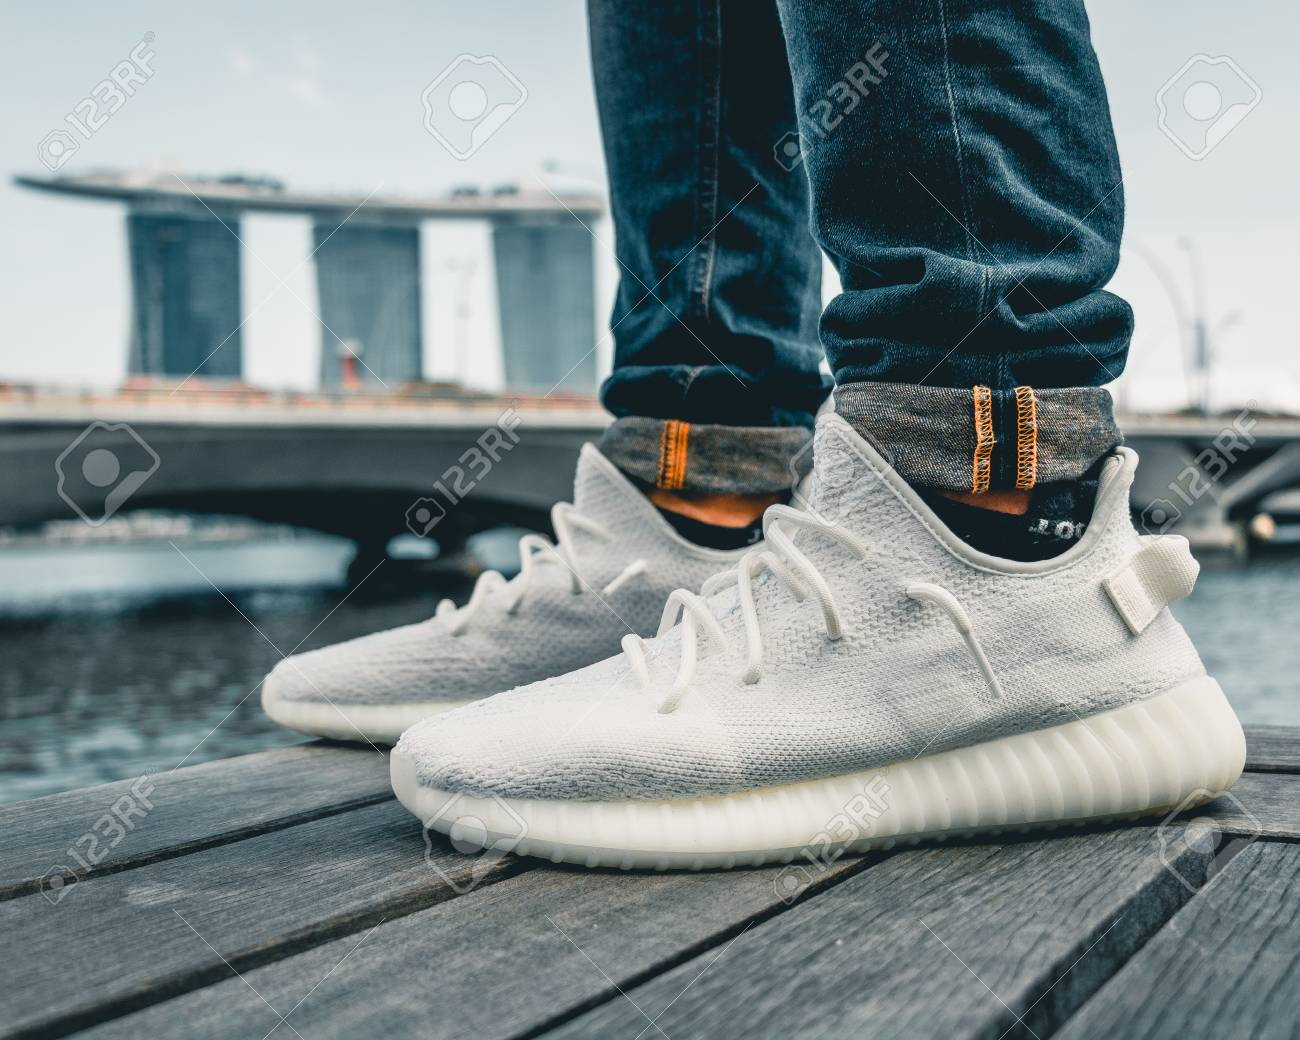 yeezy shoes singapore